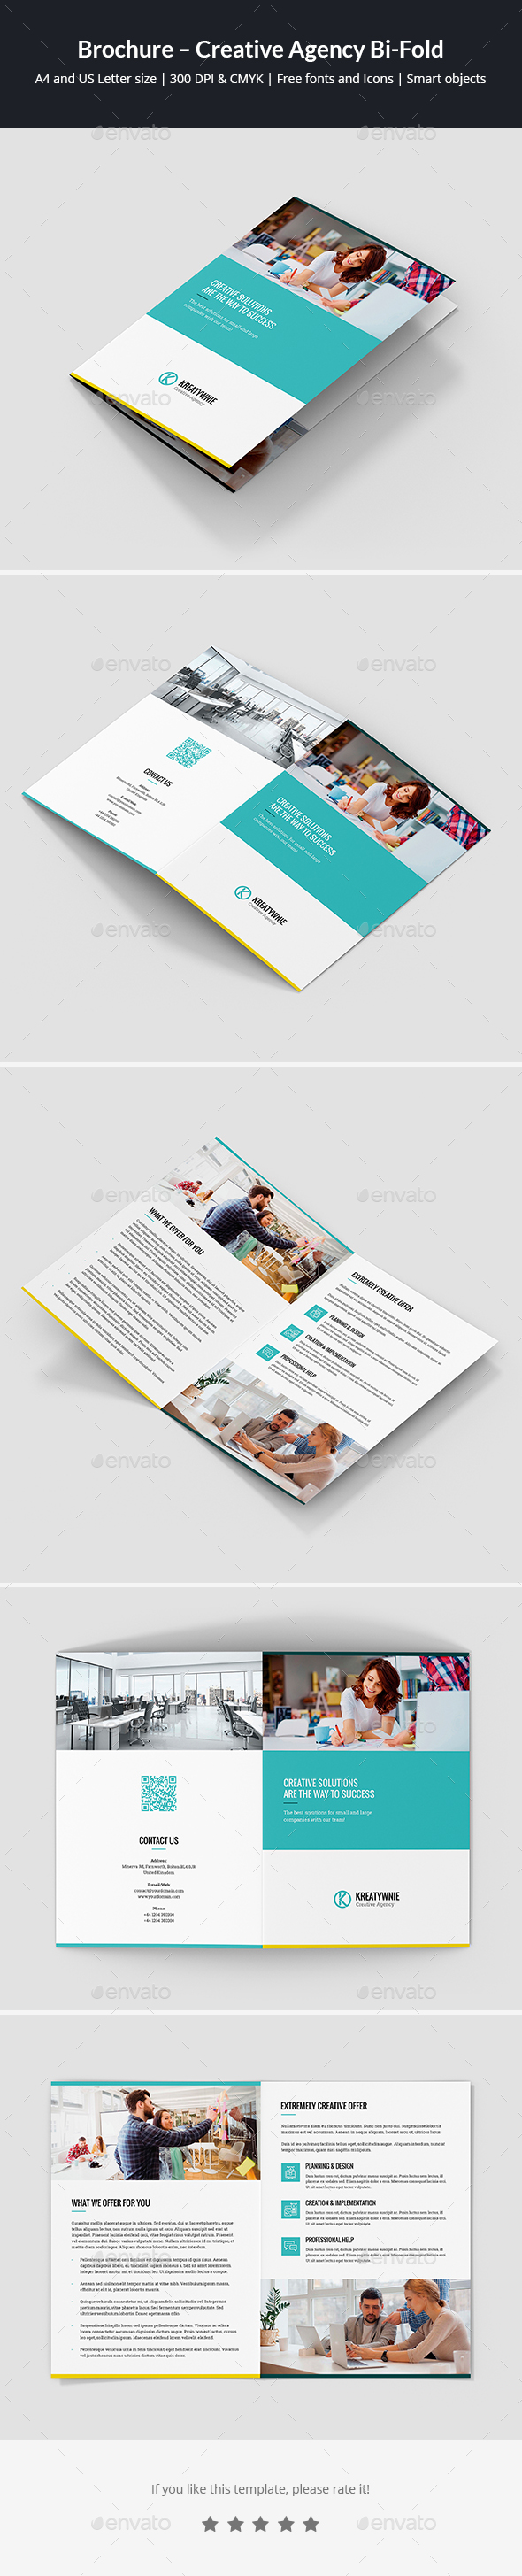 GraphicRiver Brochure Creative Agency Bi-Fold 21148196